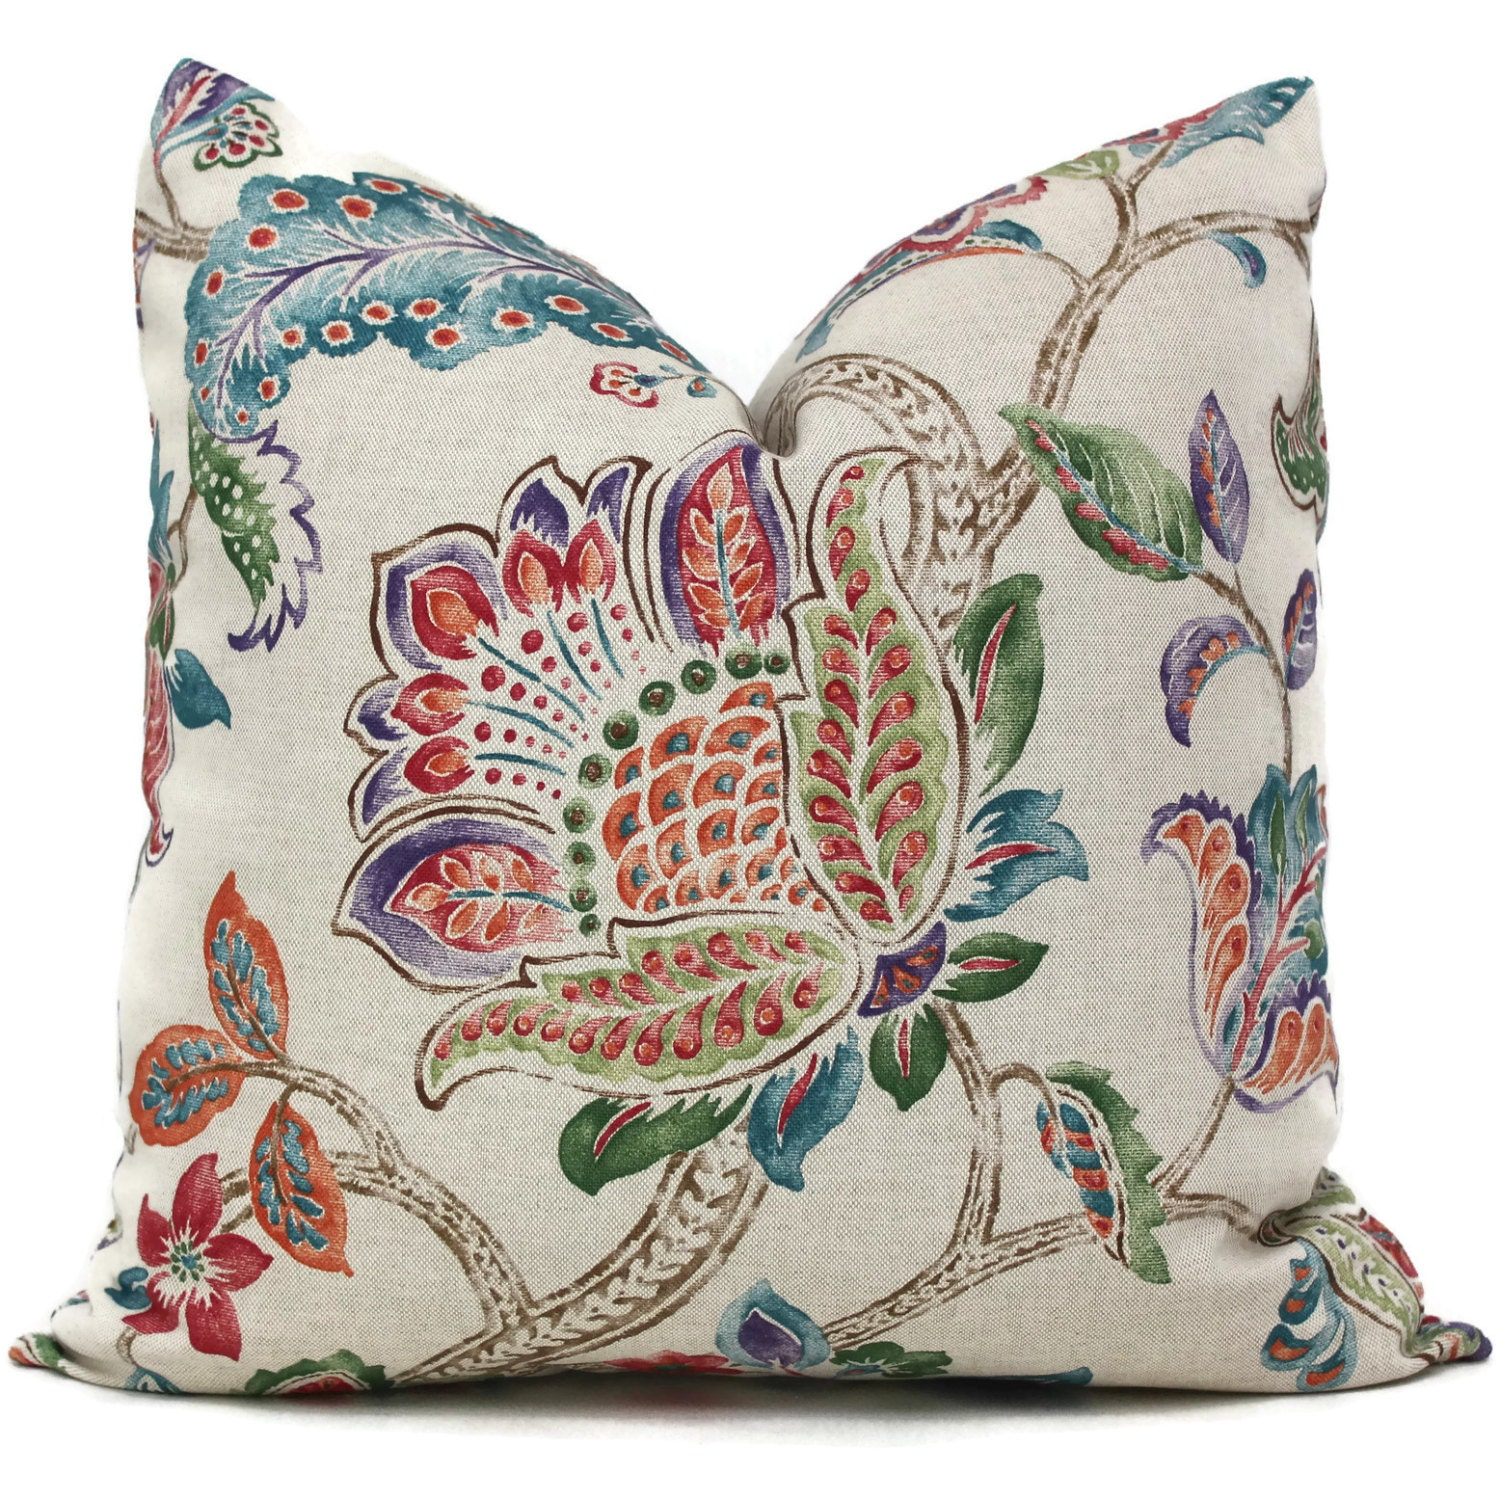 Jacobean Decorative Pillows : Multi color Jacobean Floral Decorative Pillow Cover 18x18